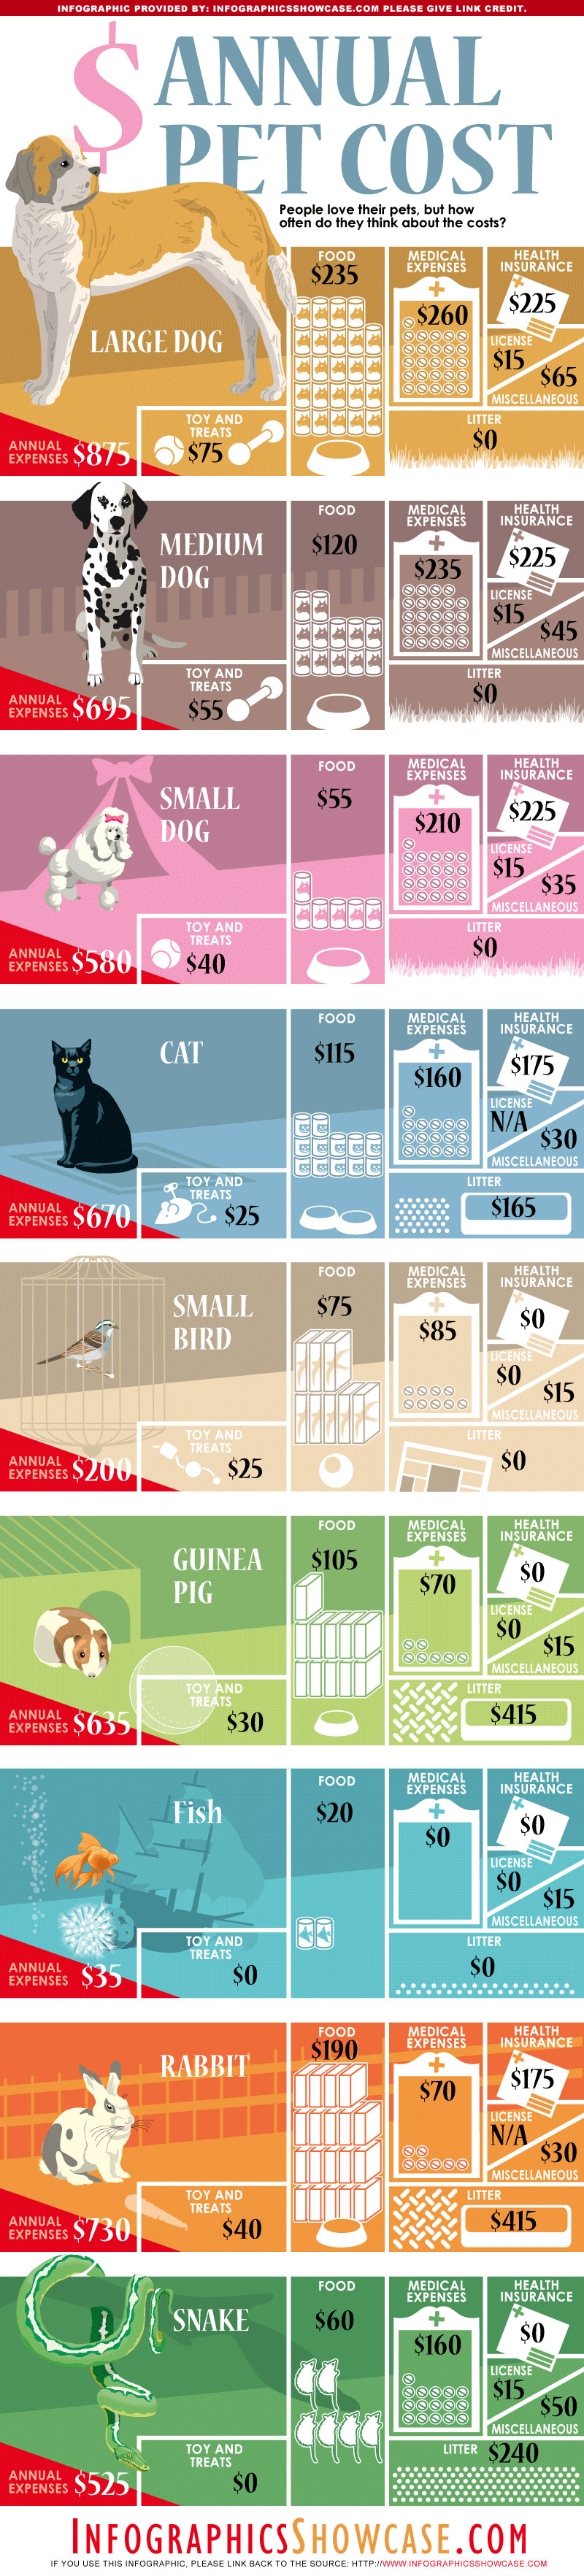 Annual-Pet-Cost-Infographic